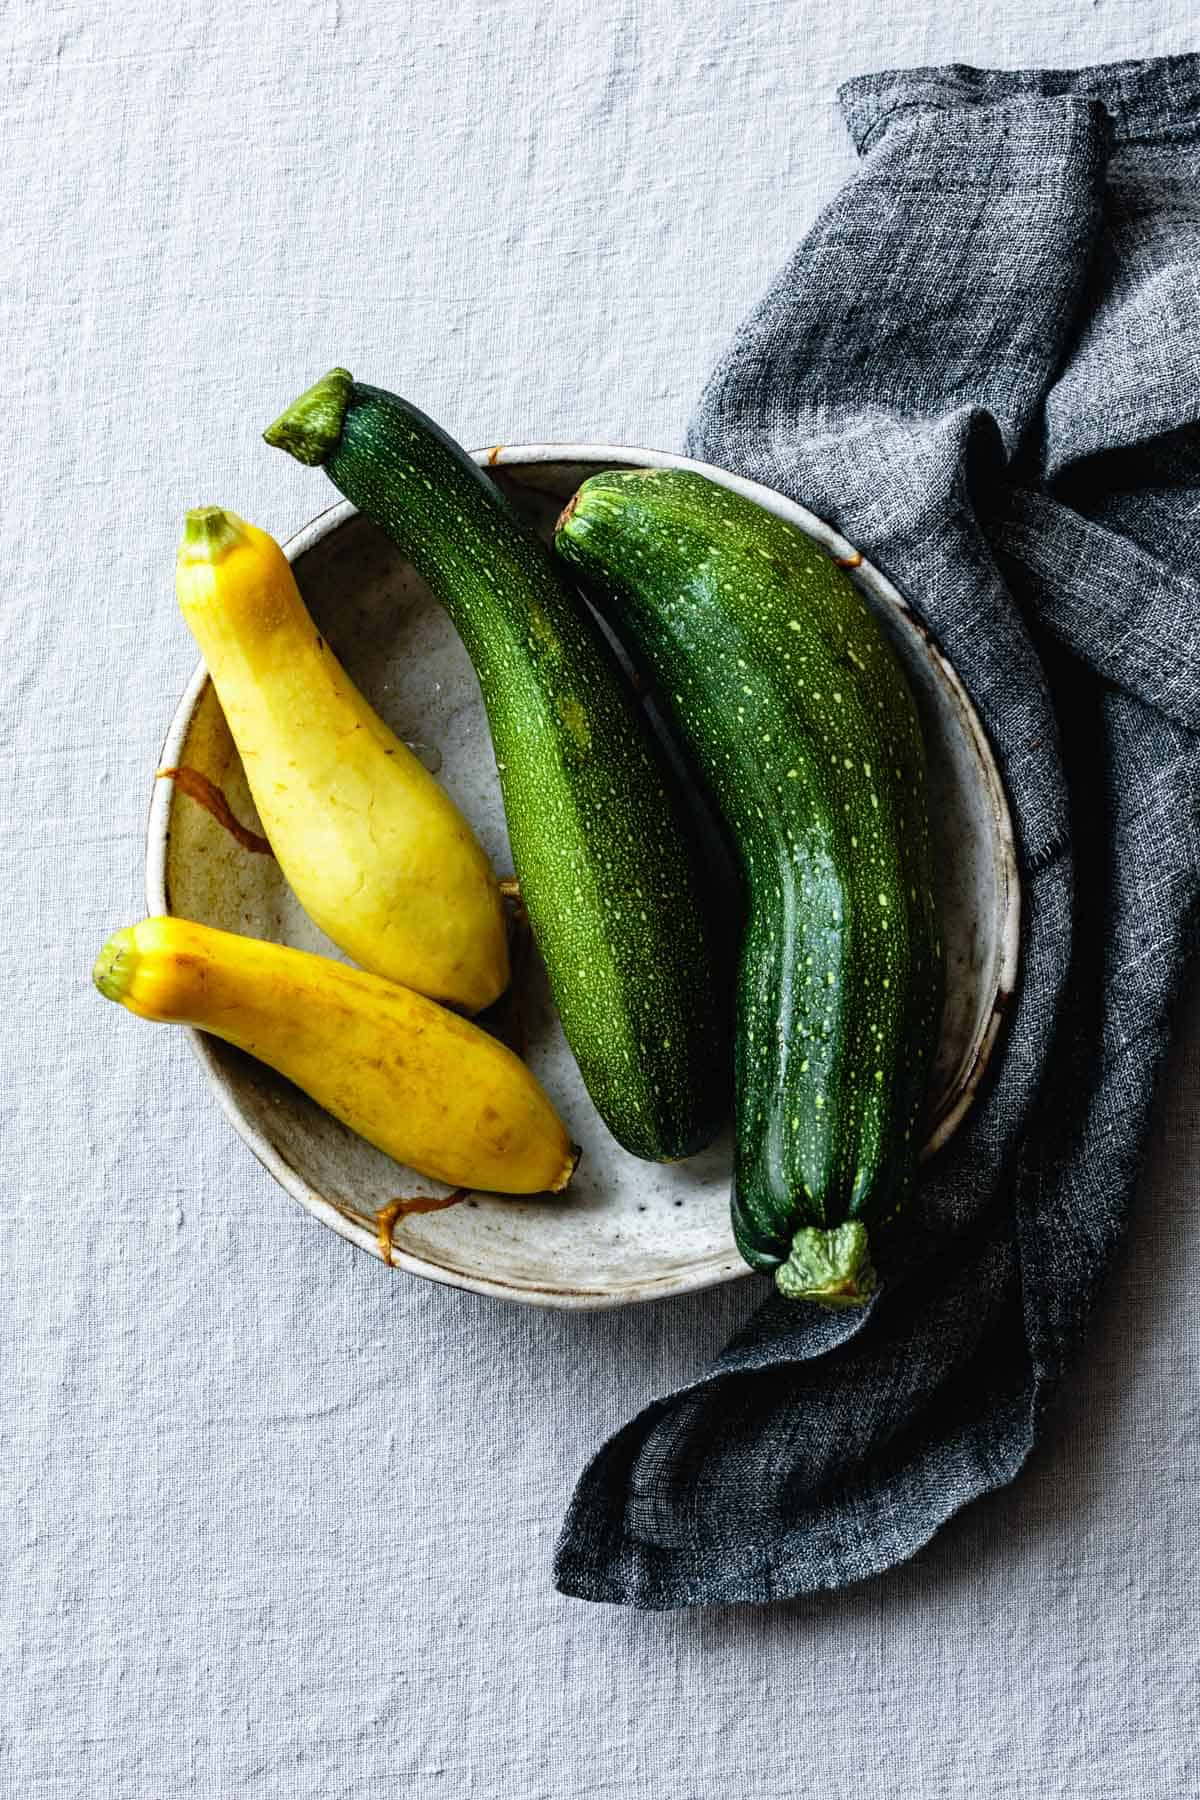 Summer squash in a bowl